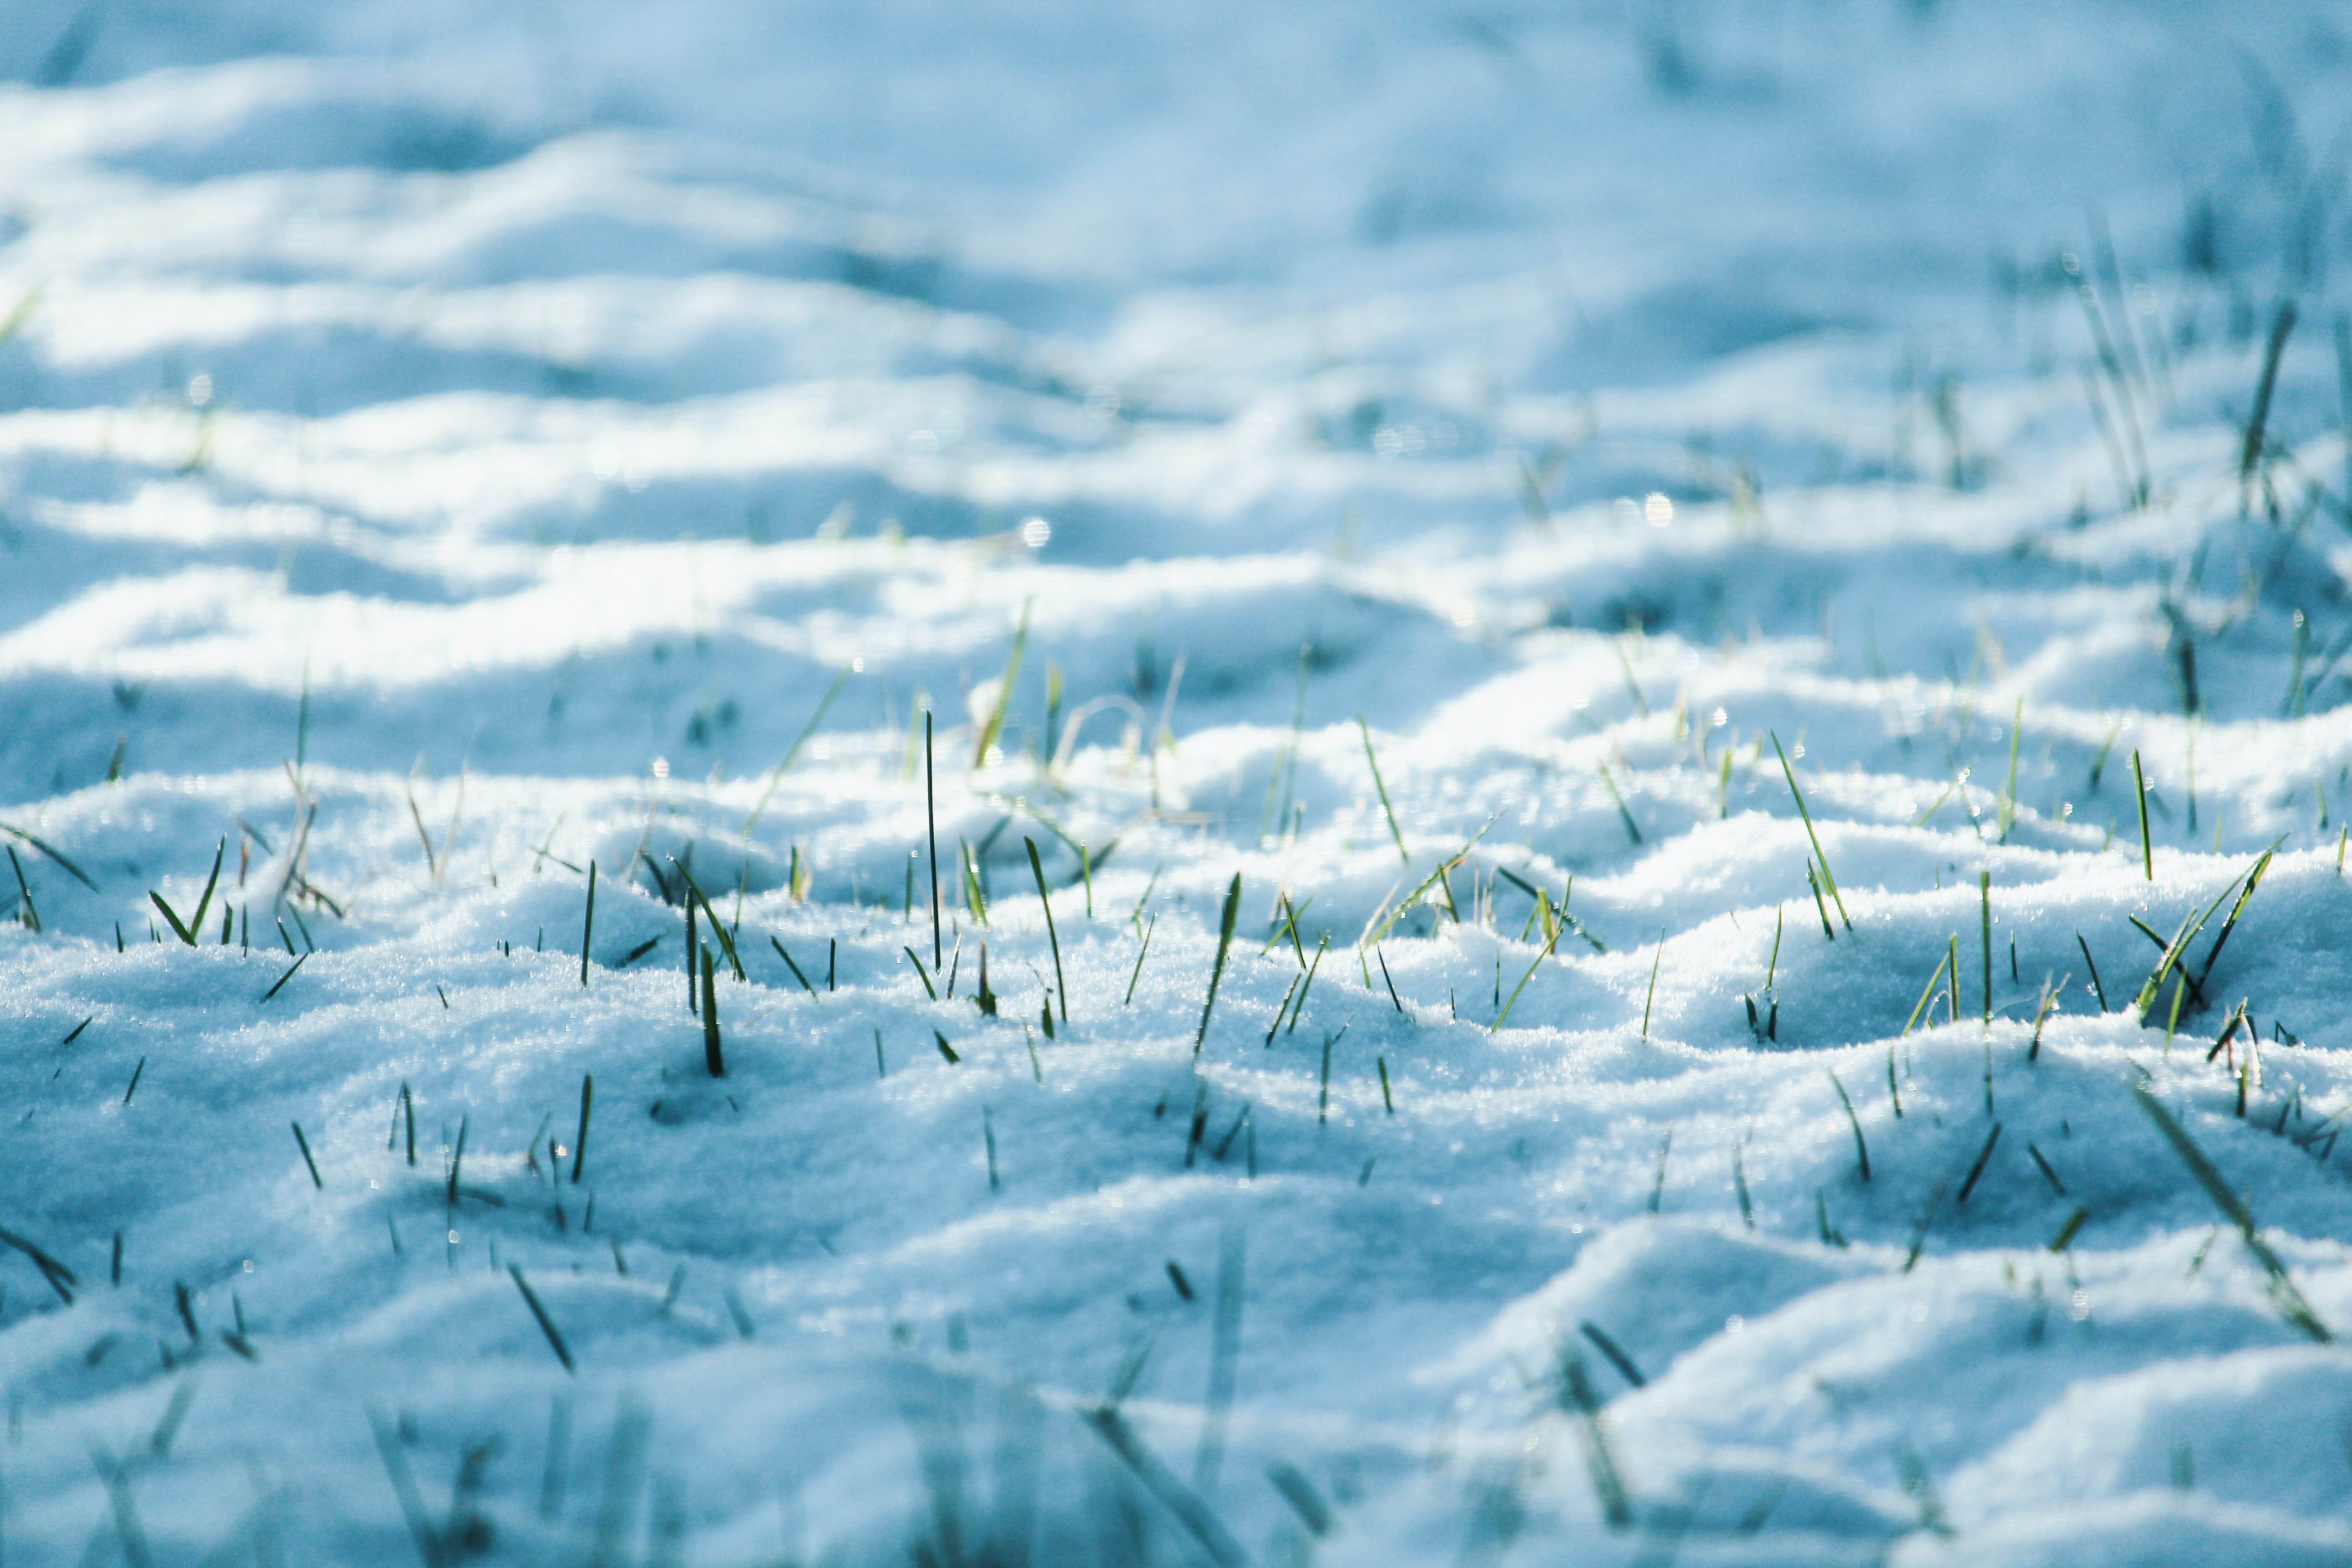 Close-Up Photo of Snow